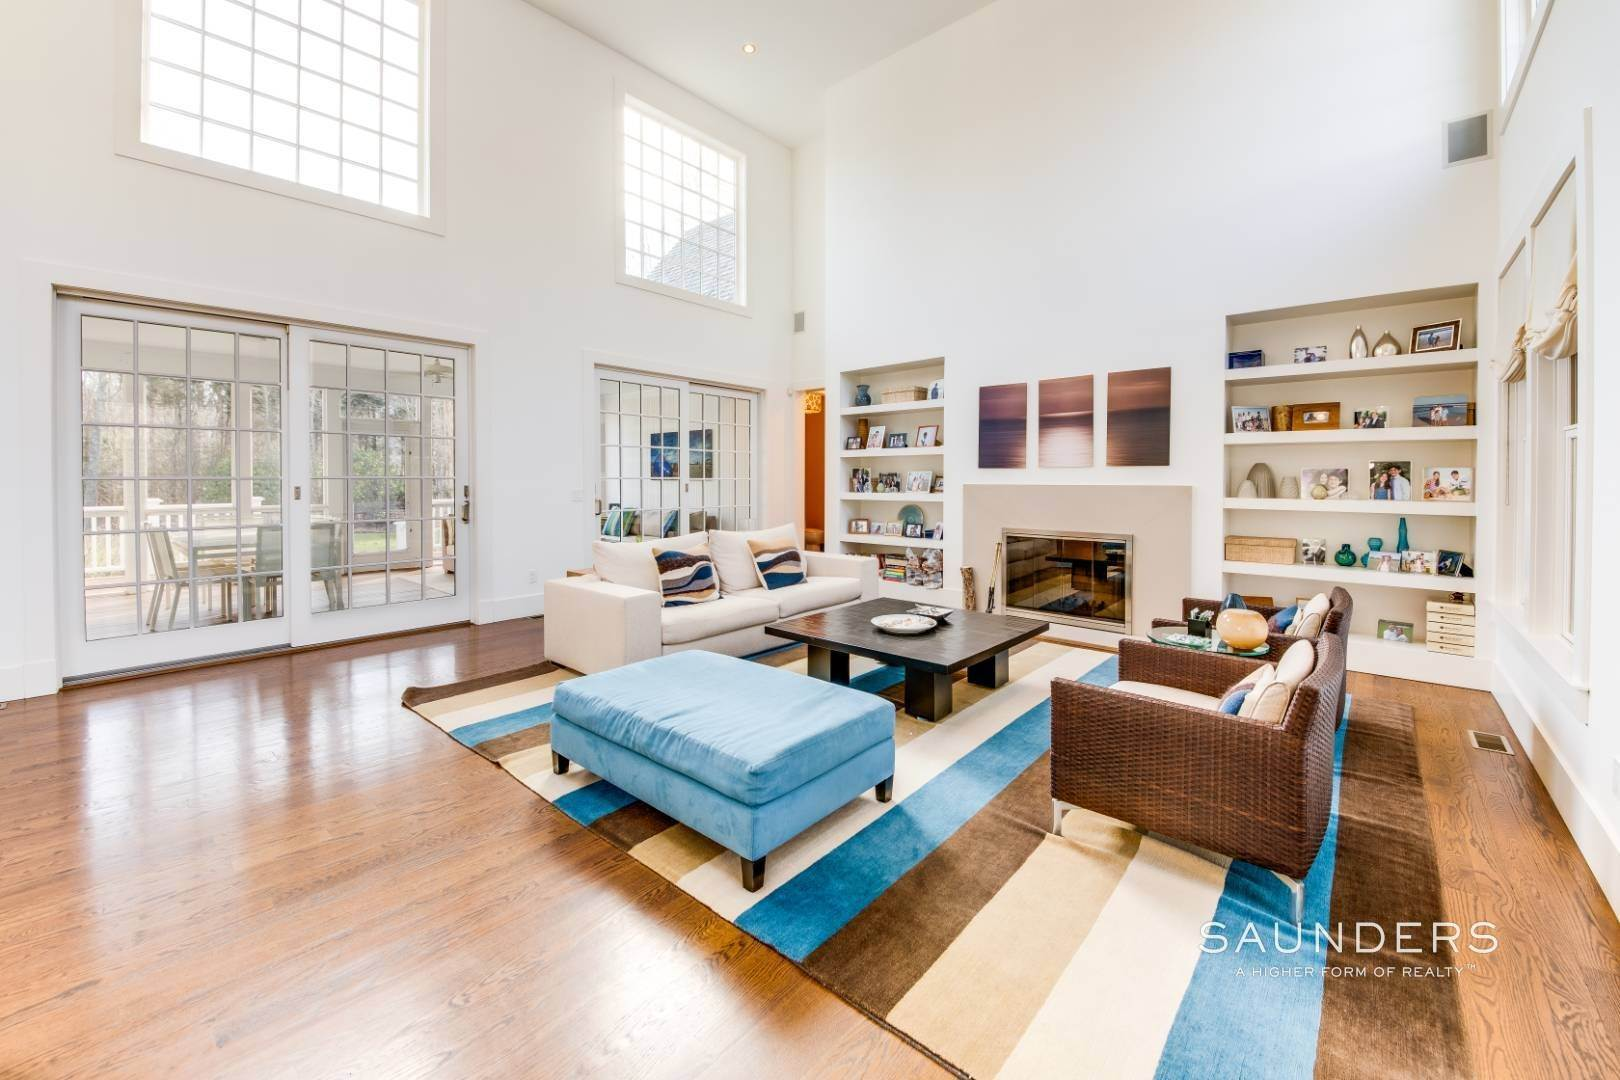 4. Single Family Homes for Sale at Wainscott South Traditional Near Beach Lane 10 Merriwood Drive, Wainscott, East Hampton Town, NY 11975